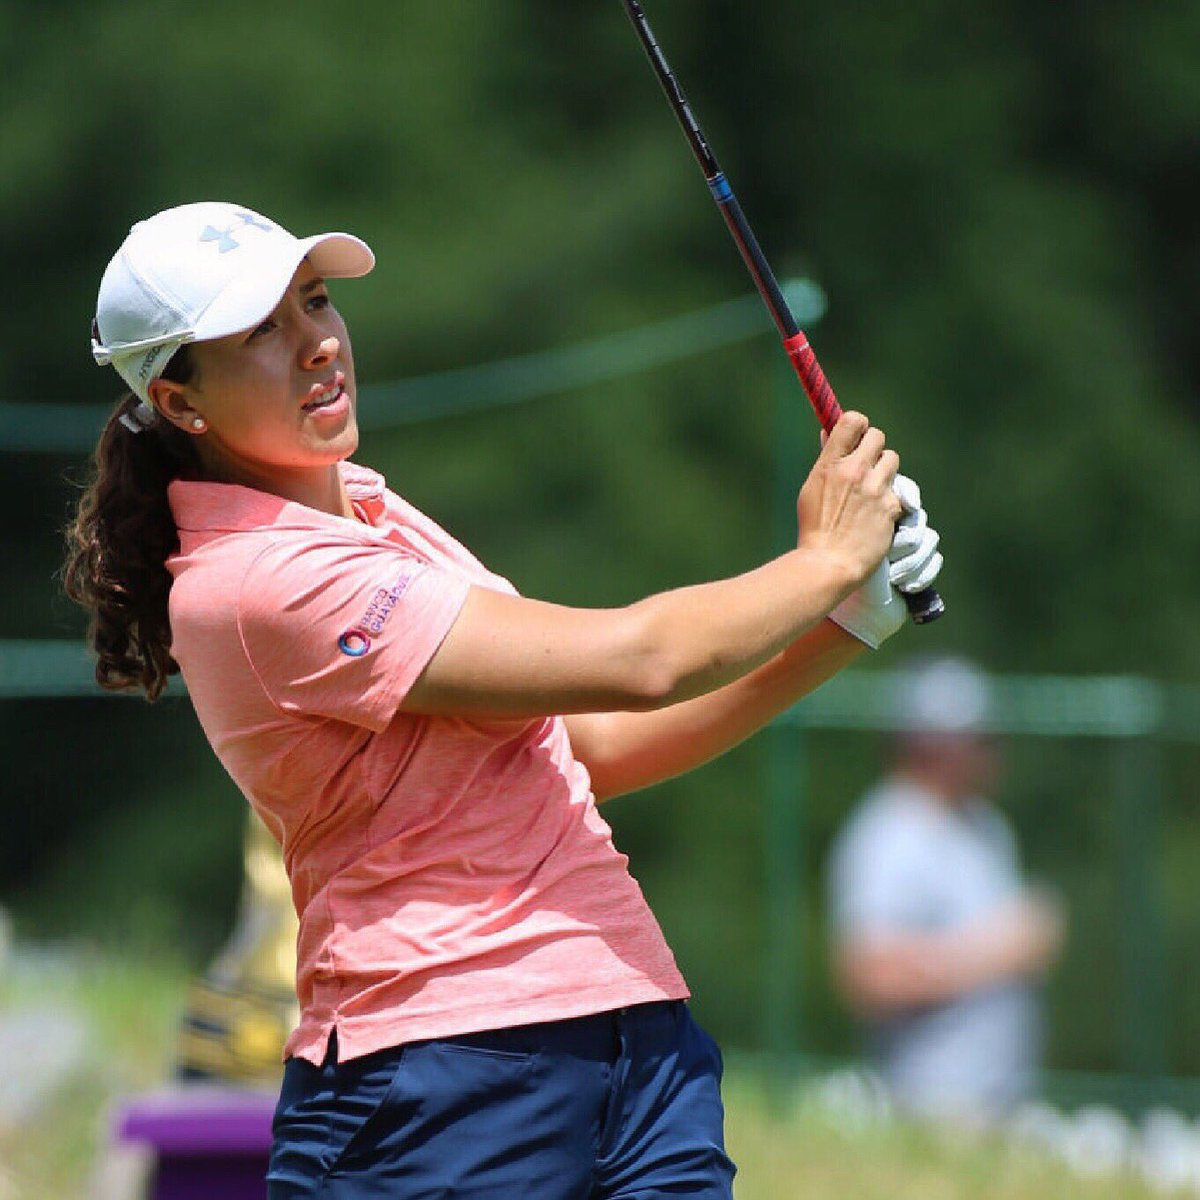 Thank you @thornberrycreeklpga for a great event! Even though I had a hard time on the greens this week, I had a lot of fun ⛳️ 🏌🏽♀️Looking forward to the @marathonlpga next week #vamosquevamos #VamosEcuador #sssalimos